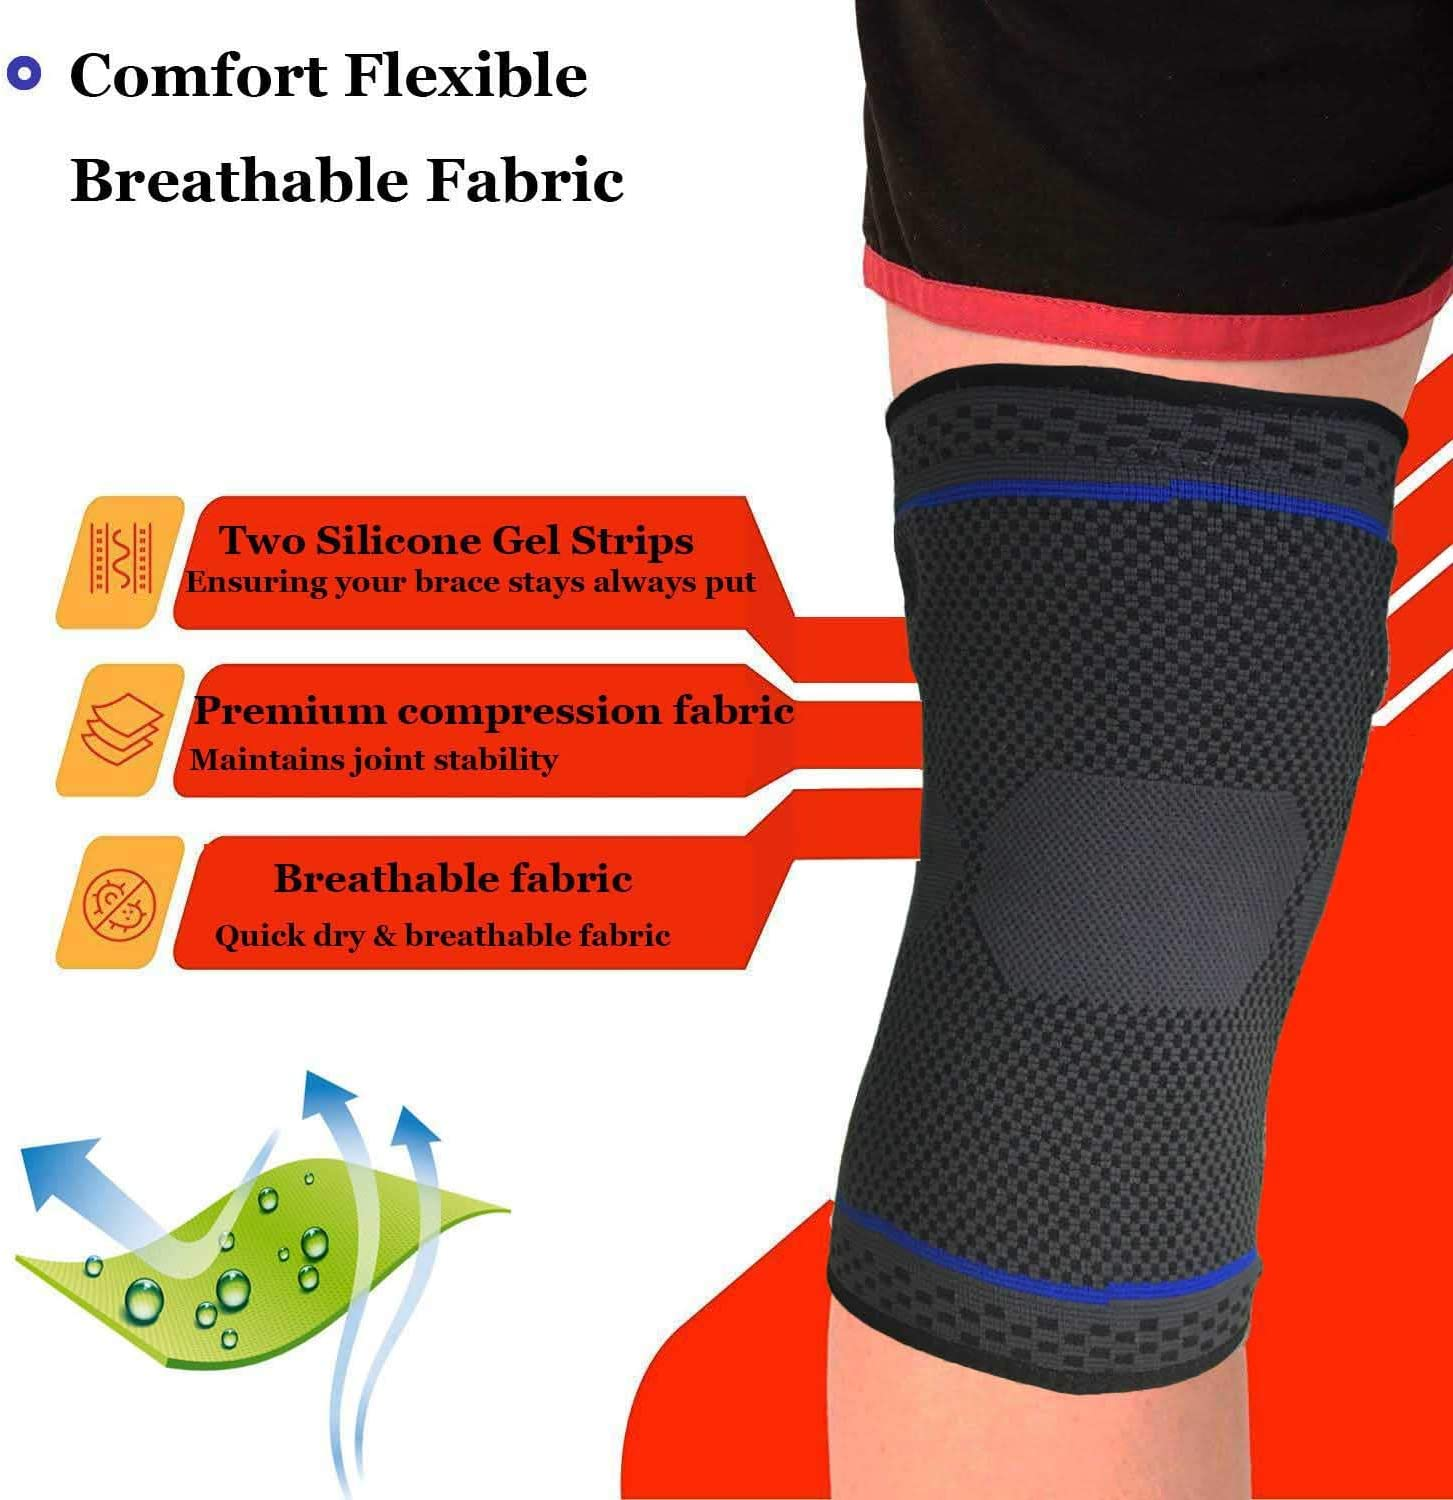 Sports Injury Recovery Joint Pain Relief Meniscus Tear Best Knee Braces for Men Women Medical Grade Knee Support Protector for Running Arthritis Professional Knee Brace Compression Sleeve